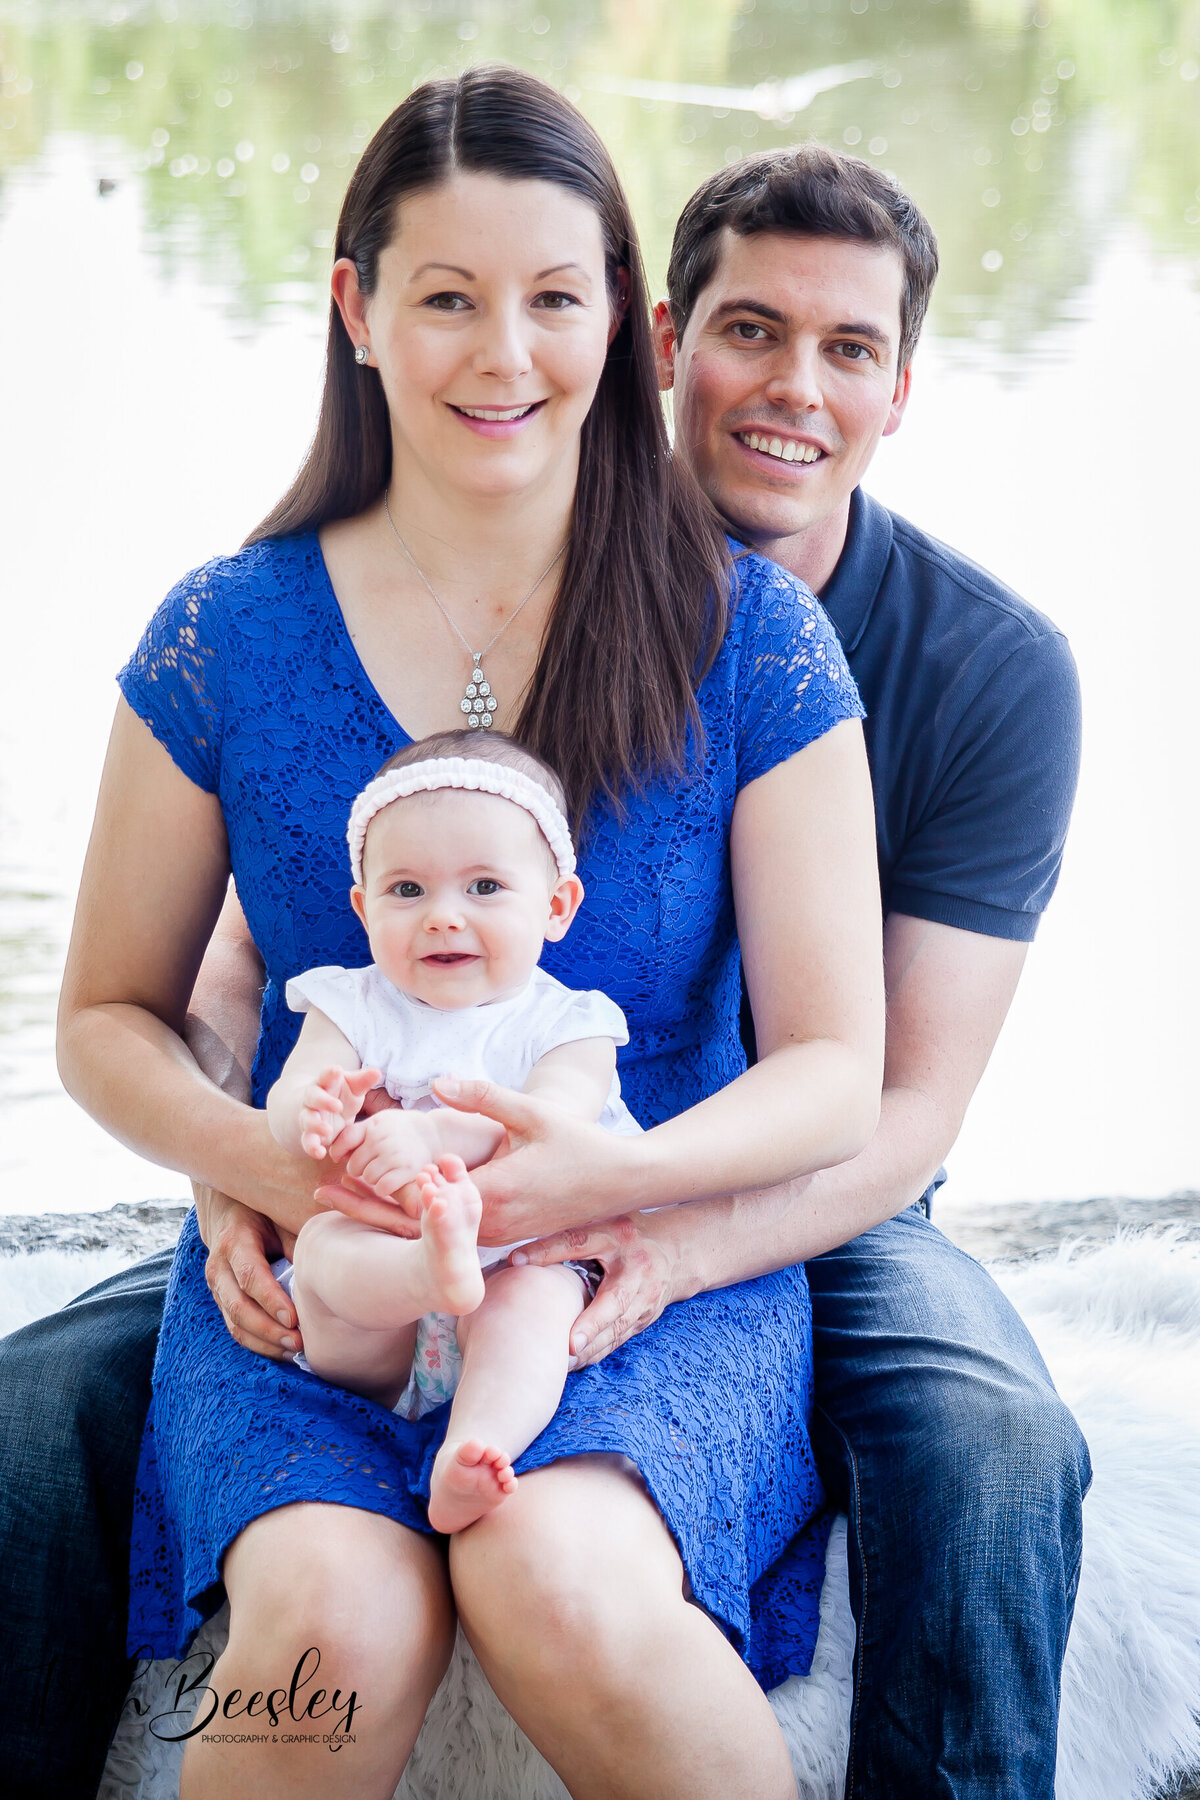 Family Portraiture, Family Photography, Cake Smashes, Milestone Photography, Events, Maternity and  Newborn, Head Shots and Branding , Boudoir, School Portraits, Simcoe County, Barrie, Innisfil,  Toronto, GTA,